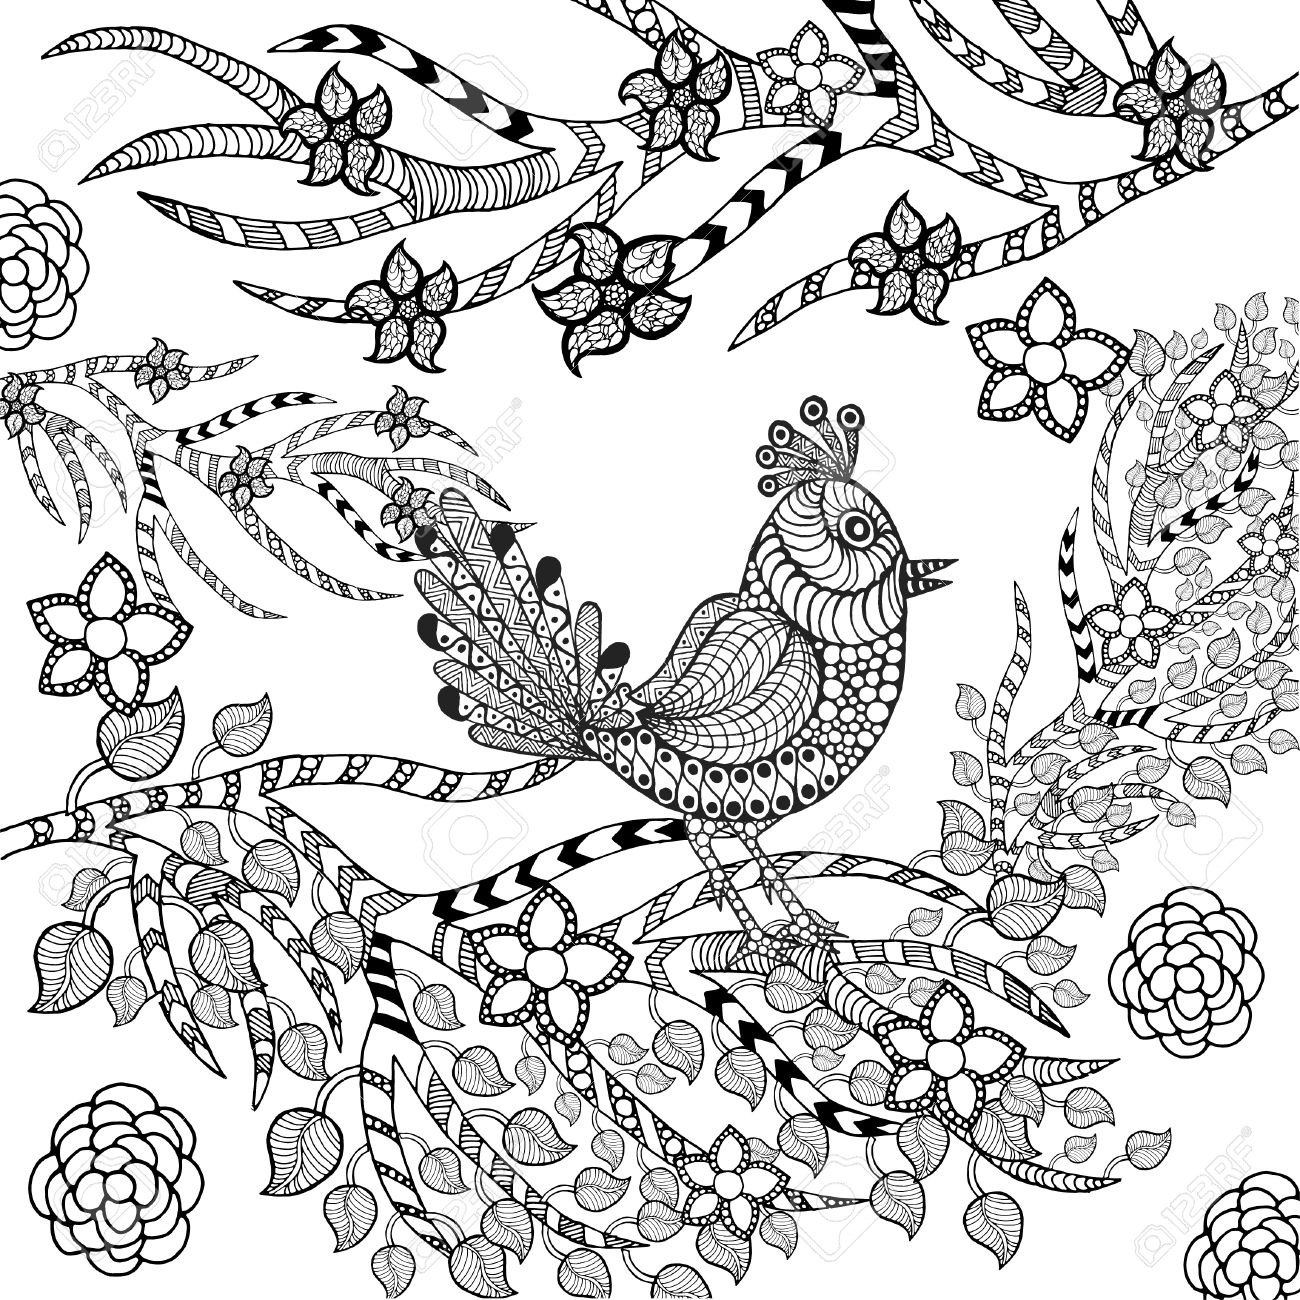 Tropical Bird In Flower Garden. Animals. Hand Drawn Doodle. Ethnic on flower bed designs, butterfly tattoo designs, flower garden back tattoo, sunflower tattoo designs, plants tattoo designs, vintage flower tattoo designs, flower tattoo ideas, zen garden tattoo designs, aces up tattoo designs, daisy tattoo designs, flower tattoos for women, flower collage tattoo designs, gladiolus garden tattoo designs, martha tattoo designs, swimming pool tattoo designs, carpenter tattoo designs, tropical flower tattoo designs, desert flower tattoo designs, spring flower tattoo designs, deuces tattoo designs,